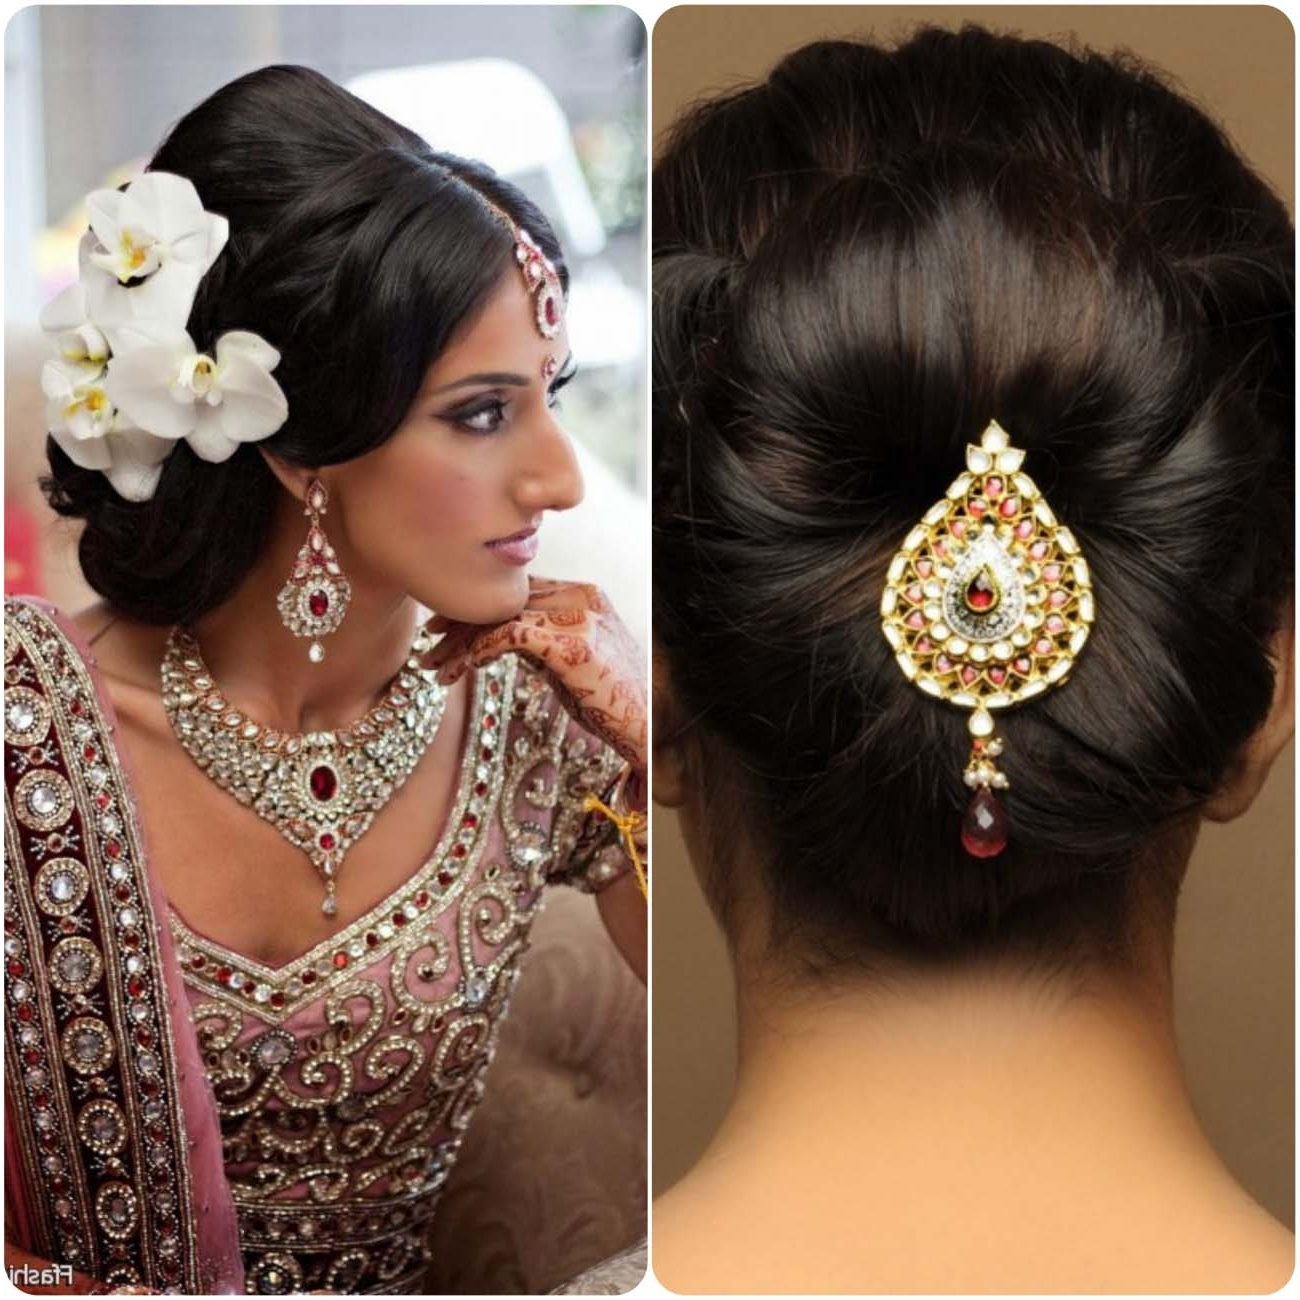 Current Wedding Hairstyles For Round Face Within Indian Wedding Hair Style For Round Face – Hairstyles Inspiring (View 14 of 15)